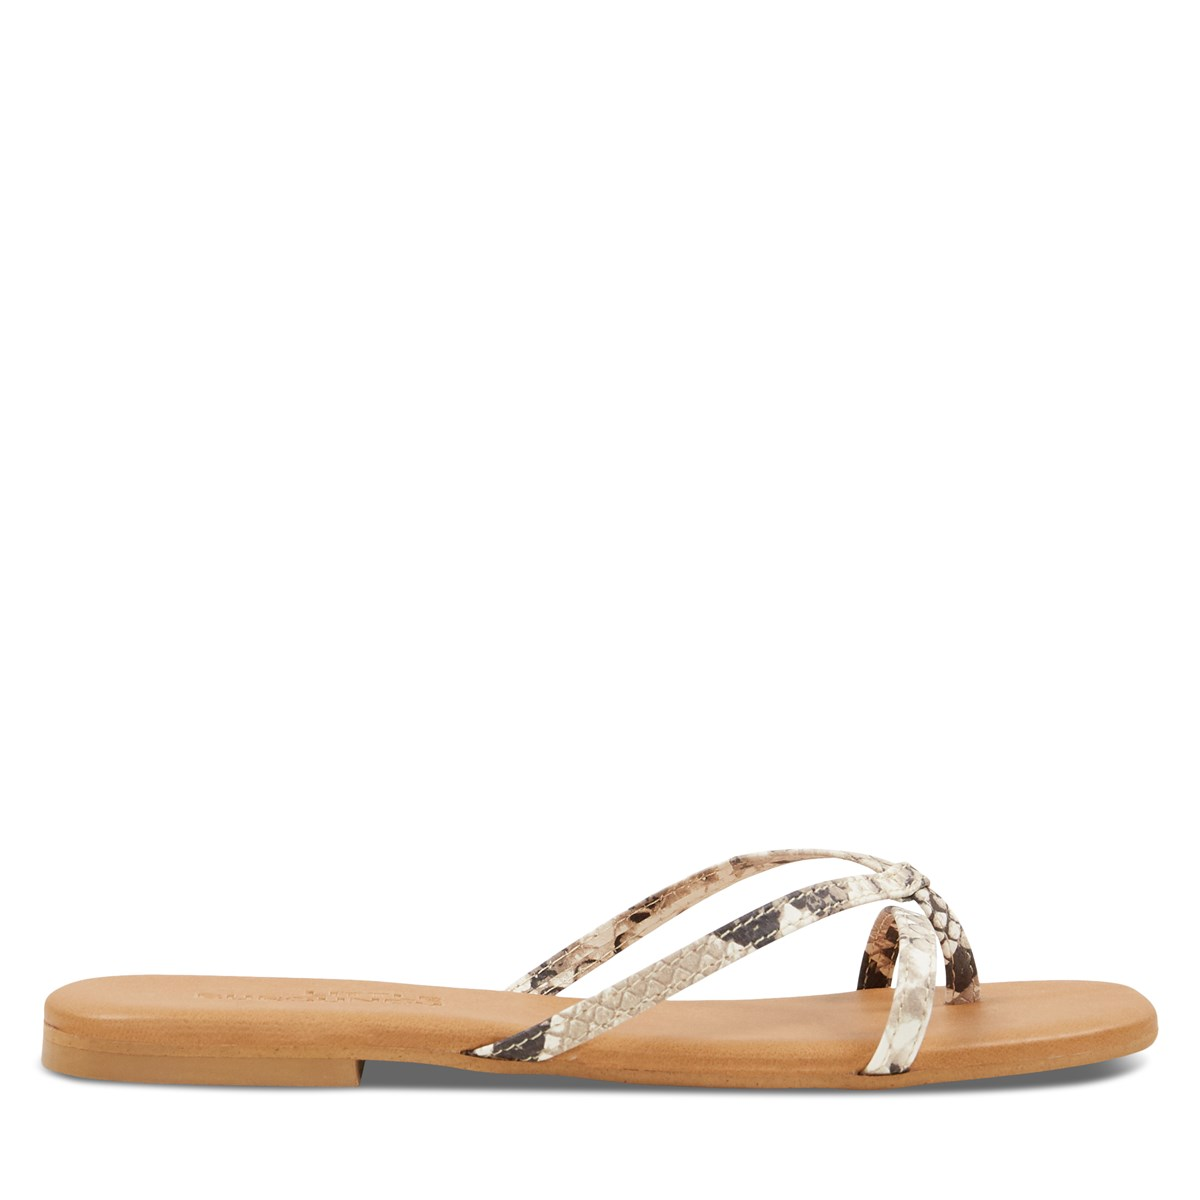 Women's Stella Slip-On Flat Sandals in Snakeskin